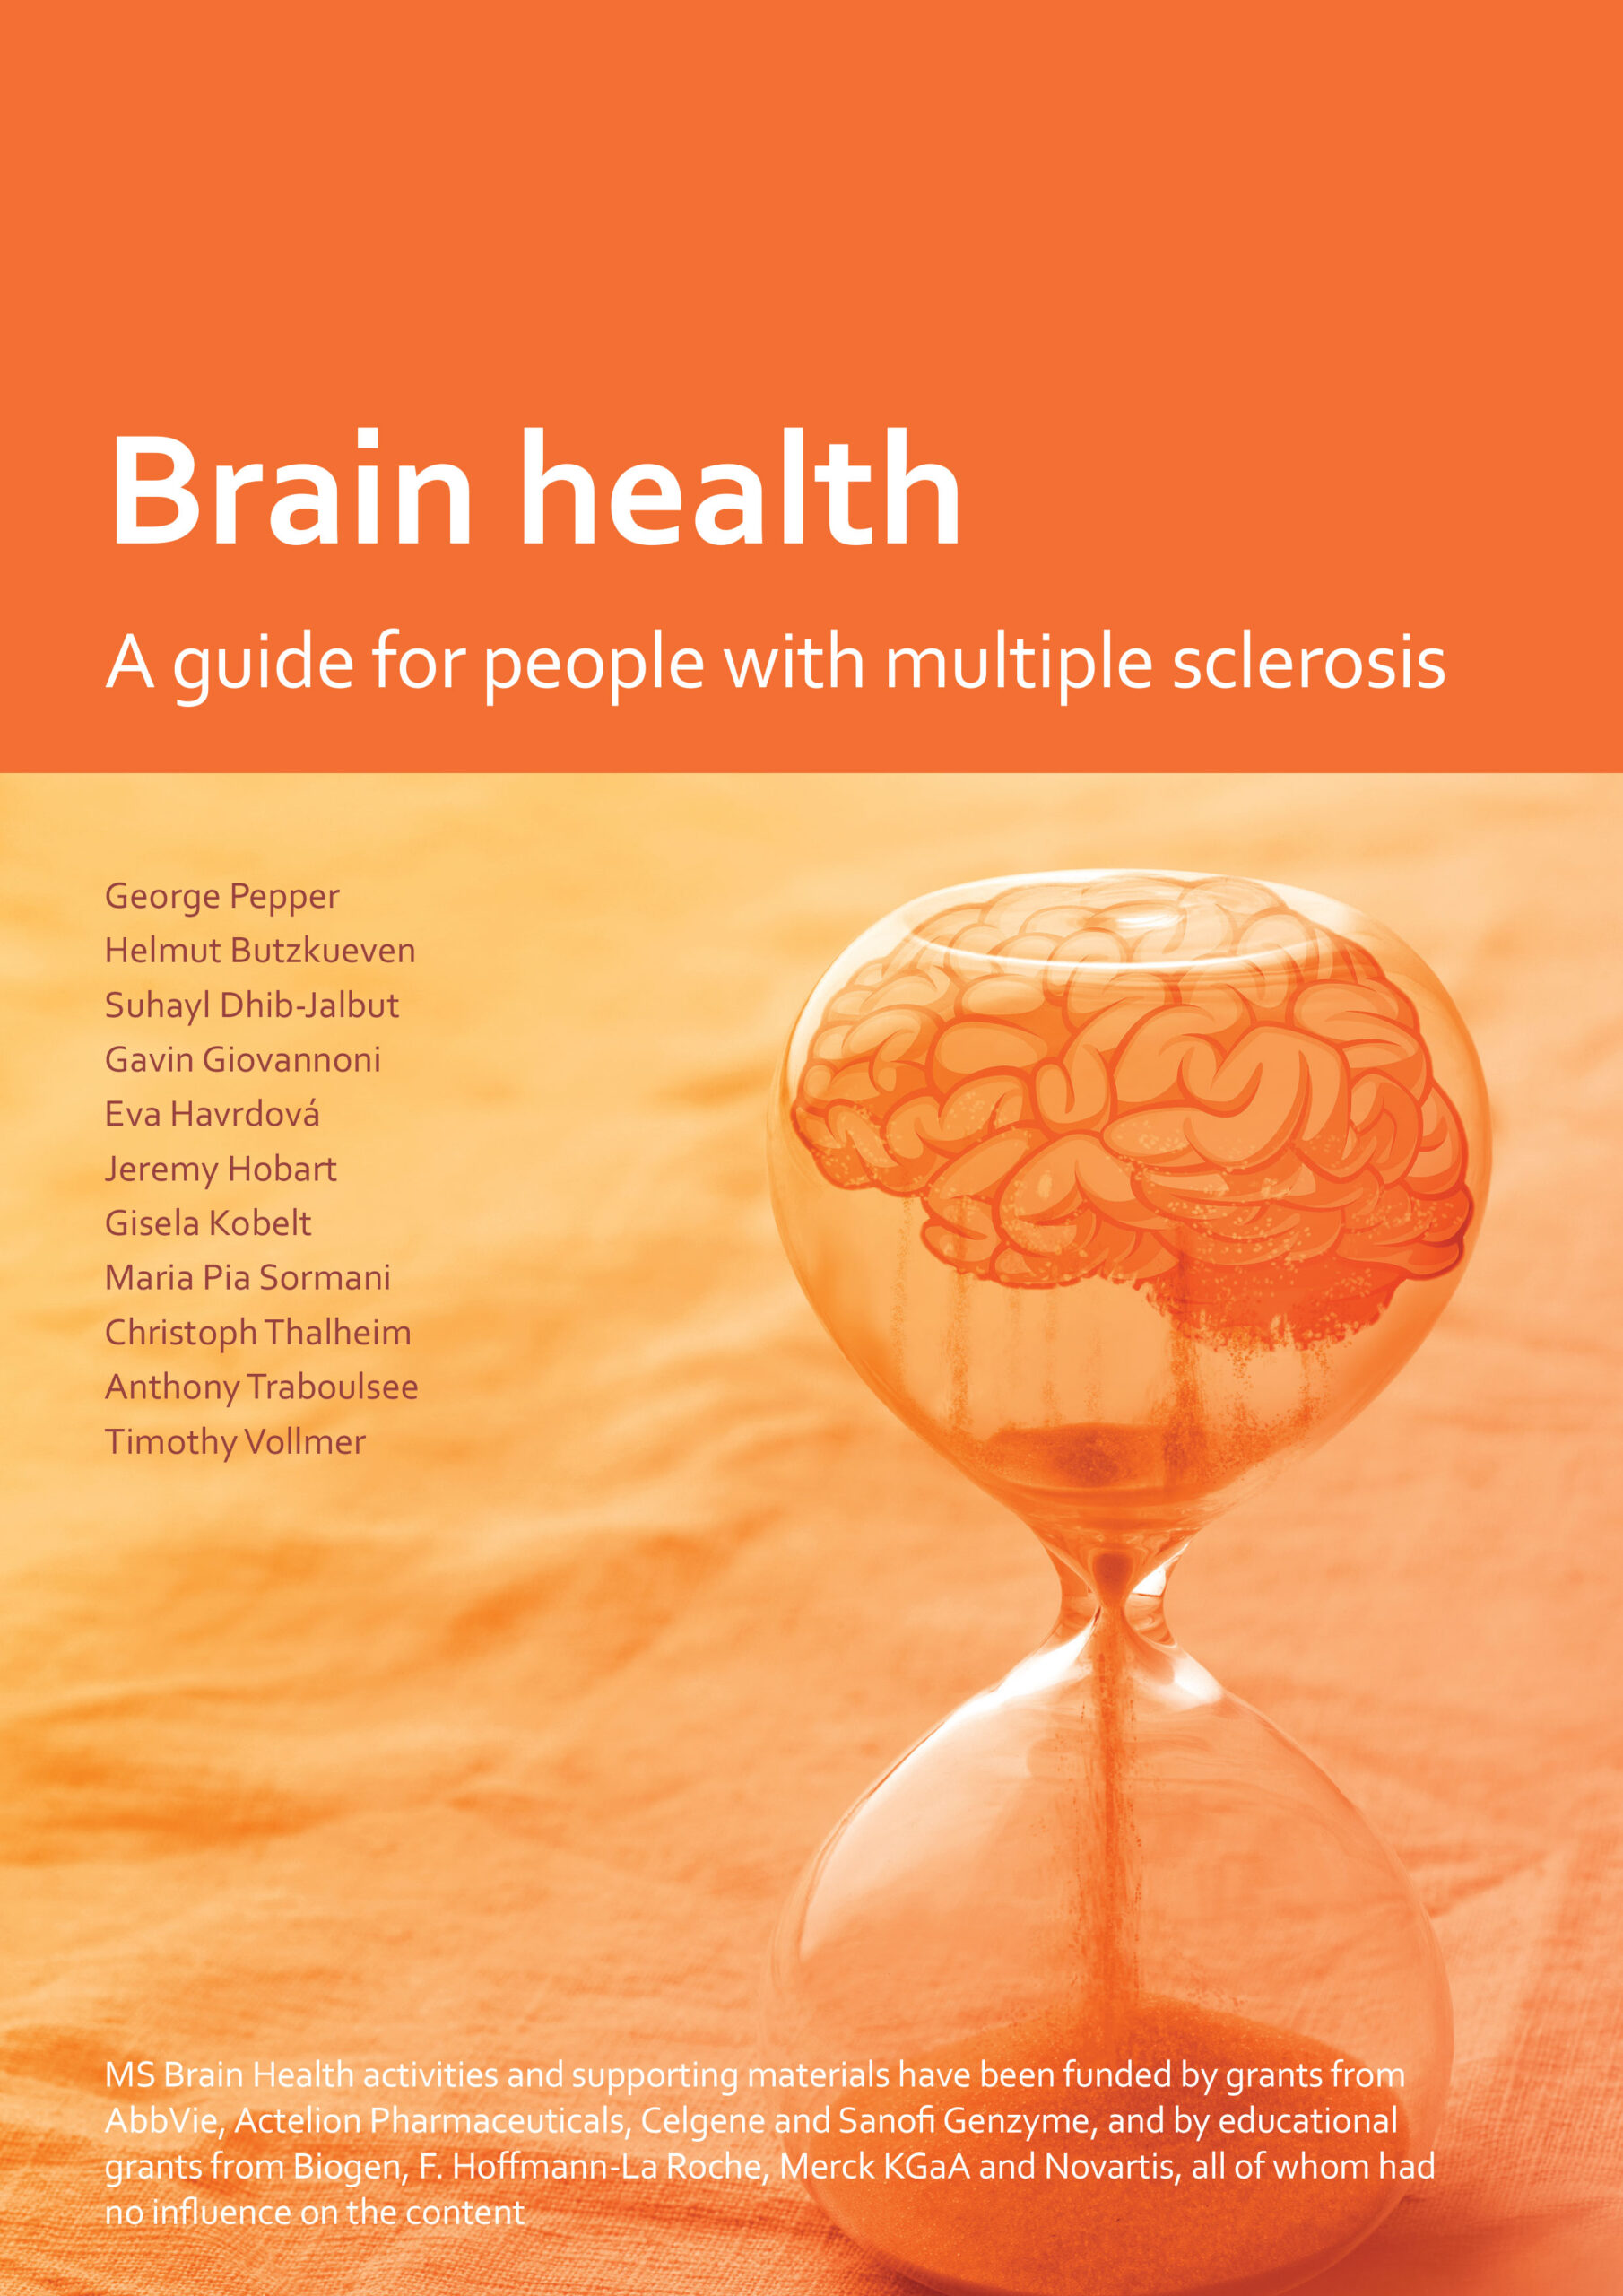 en-brain-health-a-guide-for-people-with-multiple-sclerosis-__